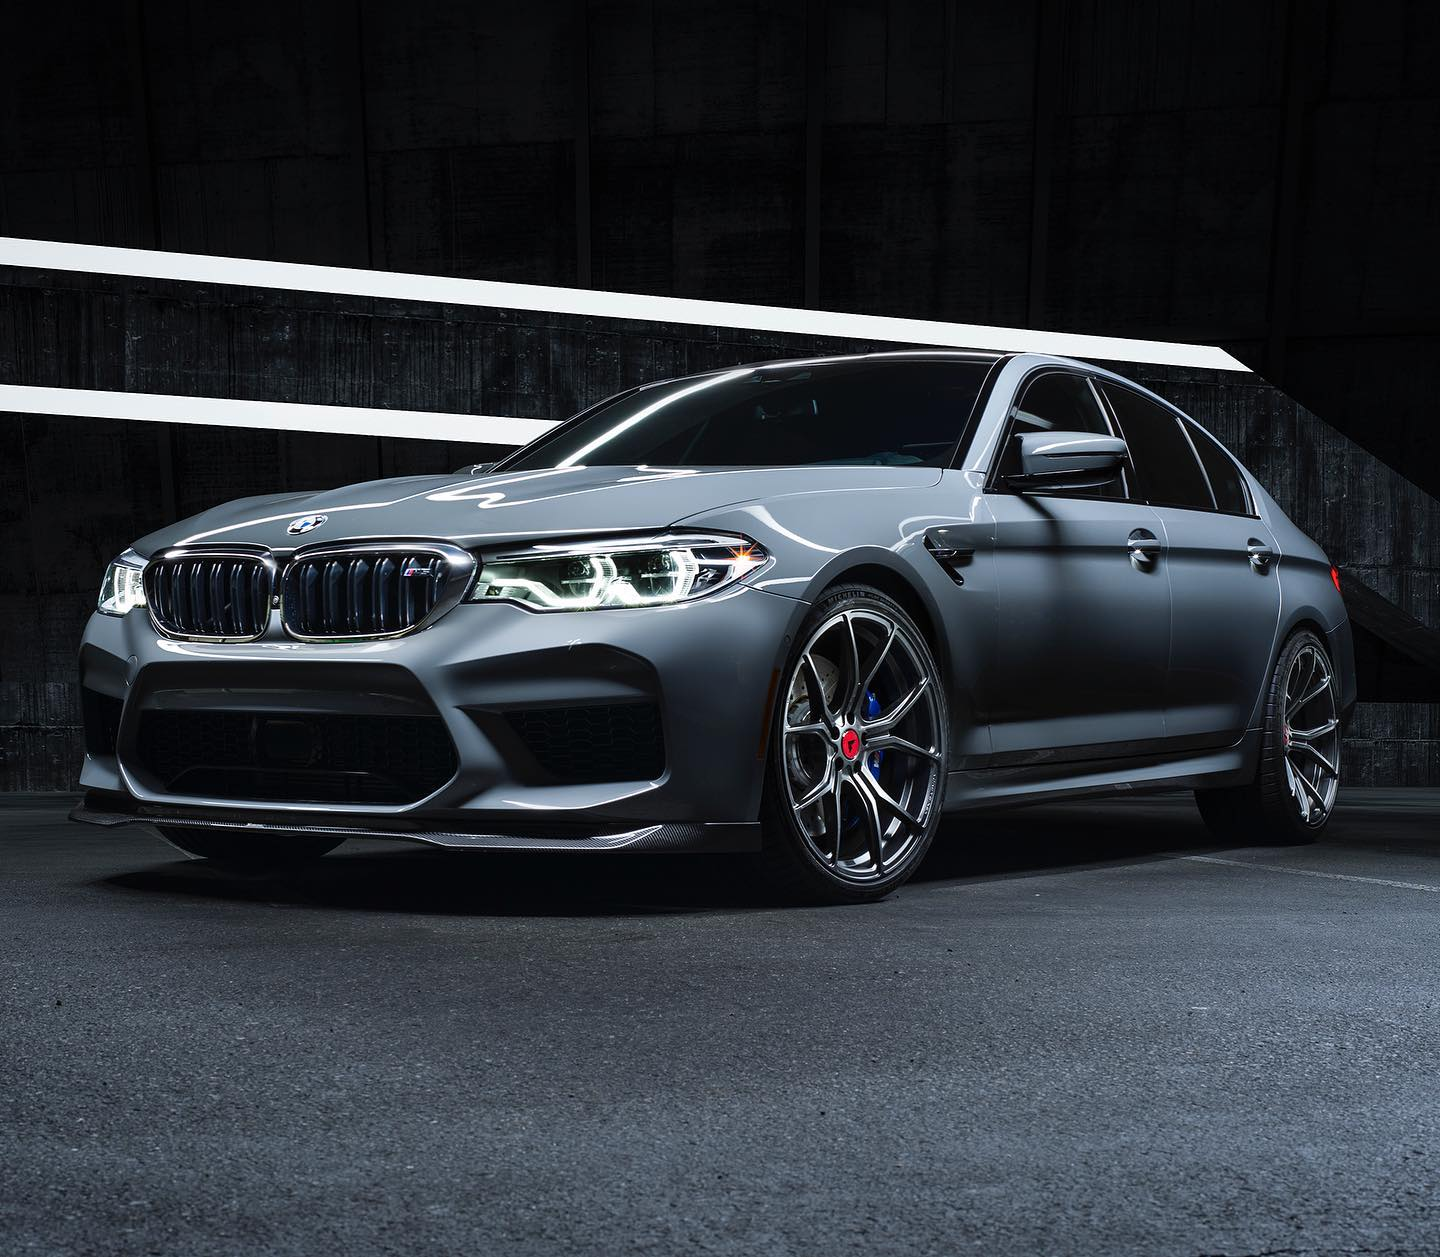 bmw-m5-f90-tuning-carbon-bodykit